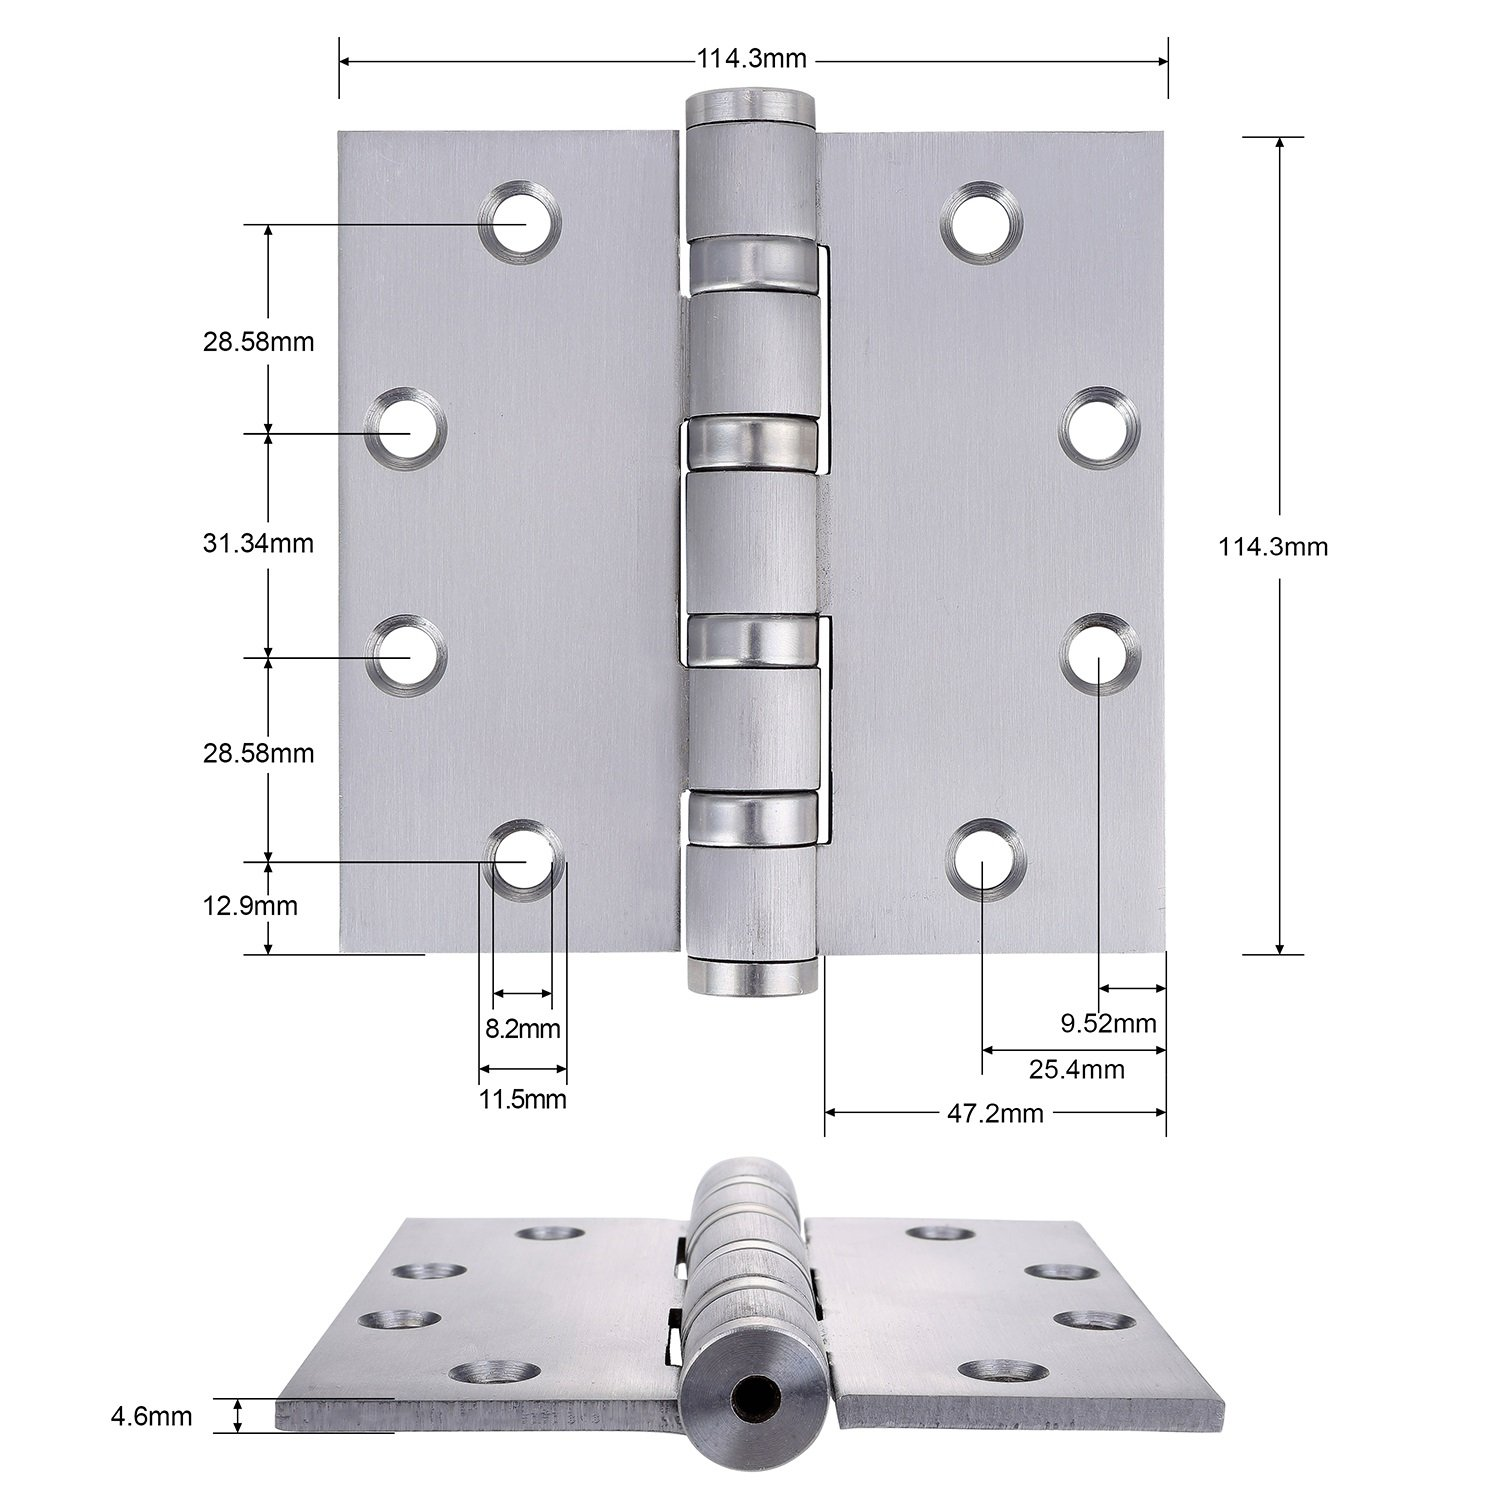 Satin Chrome Finish Commercial Door Hinge 4 Bearing Heavy Weight 4.5 Inch by Dependable Direct Pack of 9